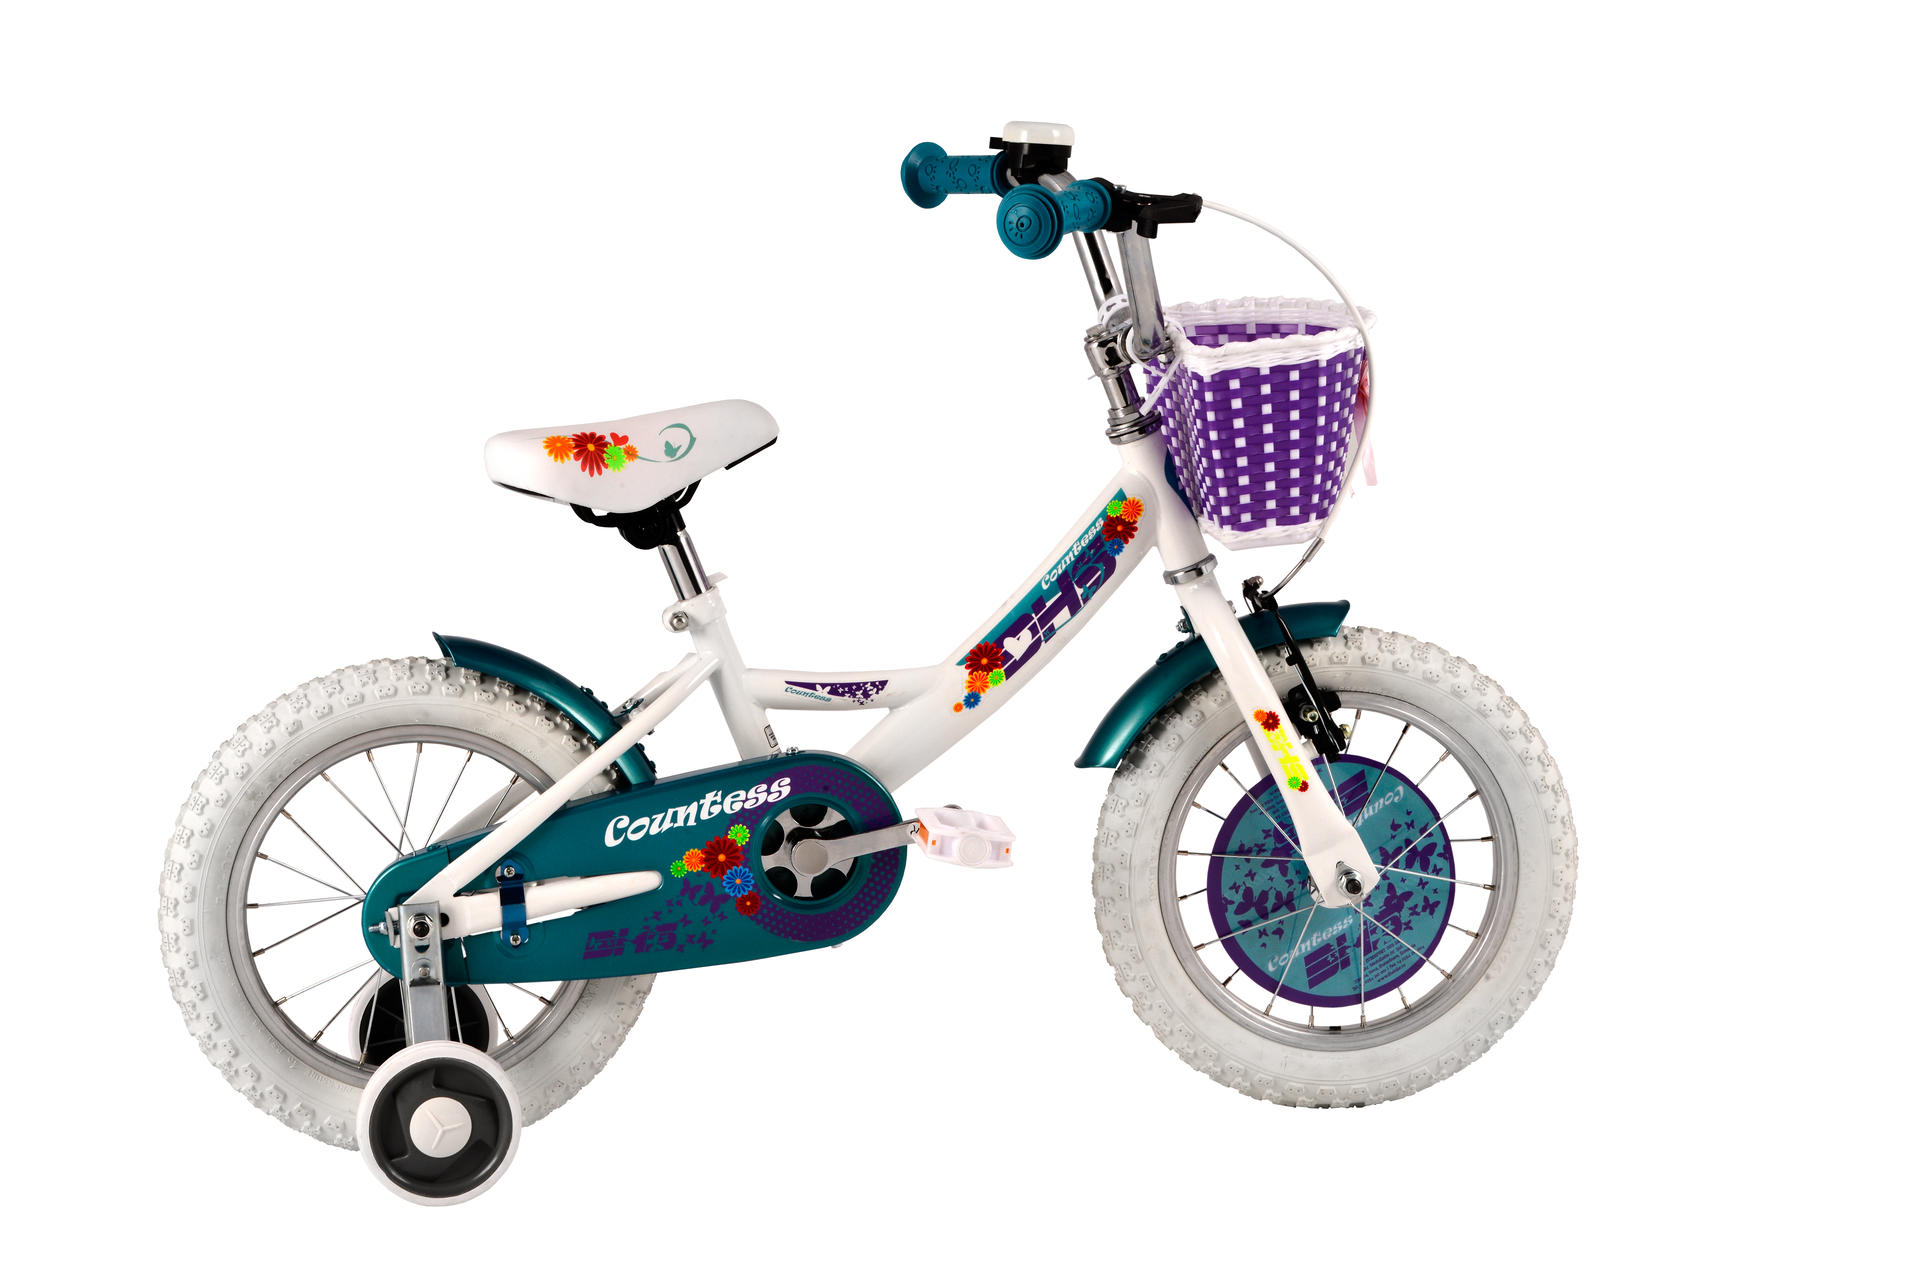 Bicicletta da bambini DHS Countess 1402 White